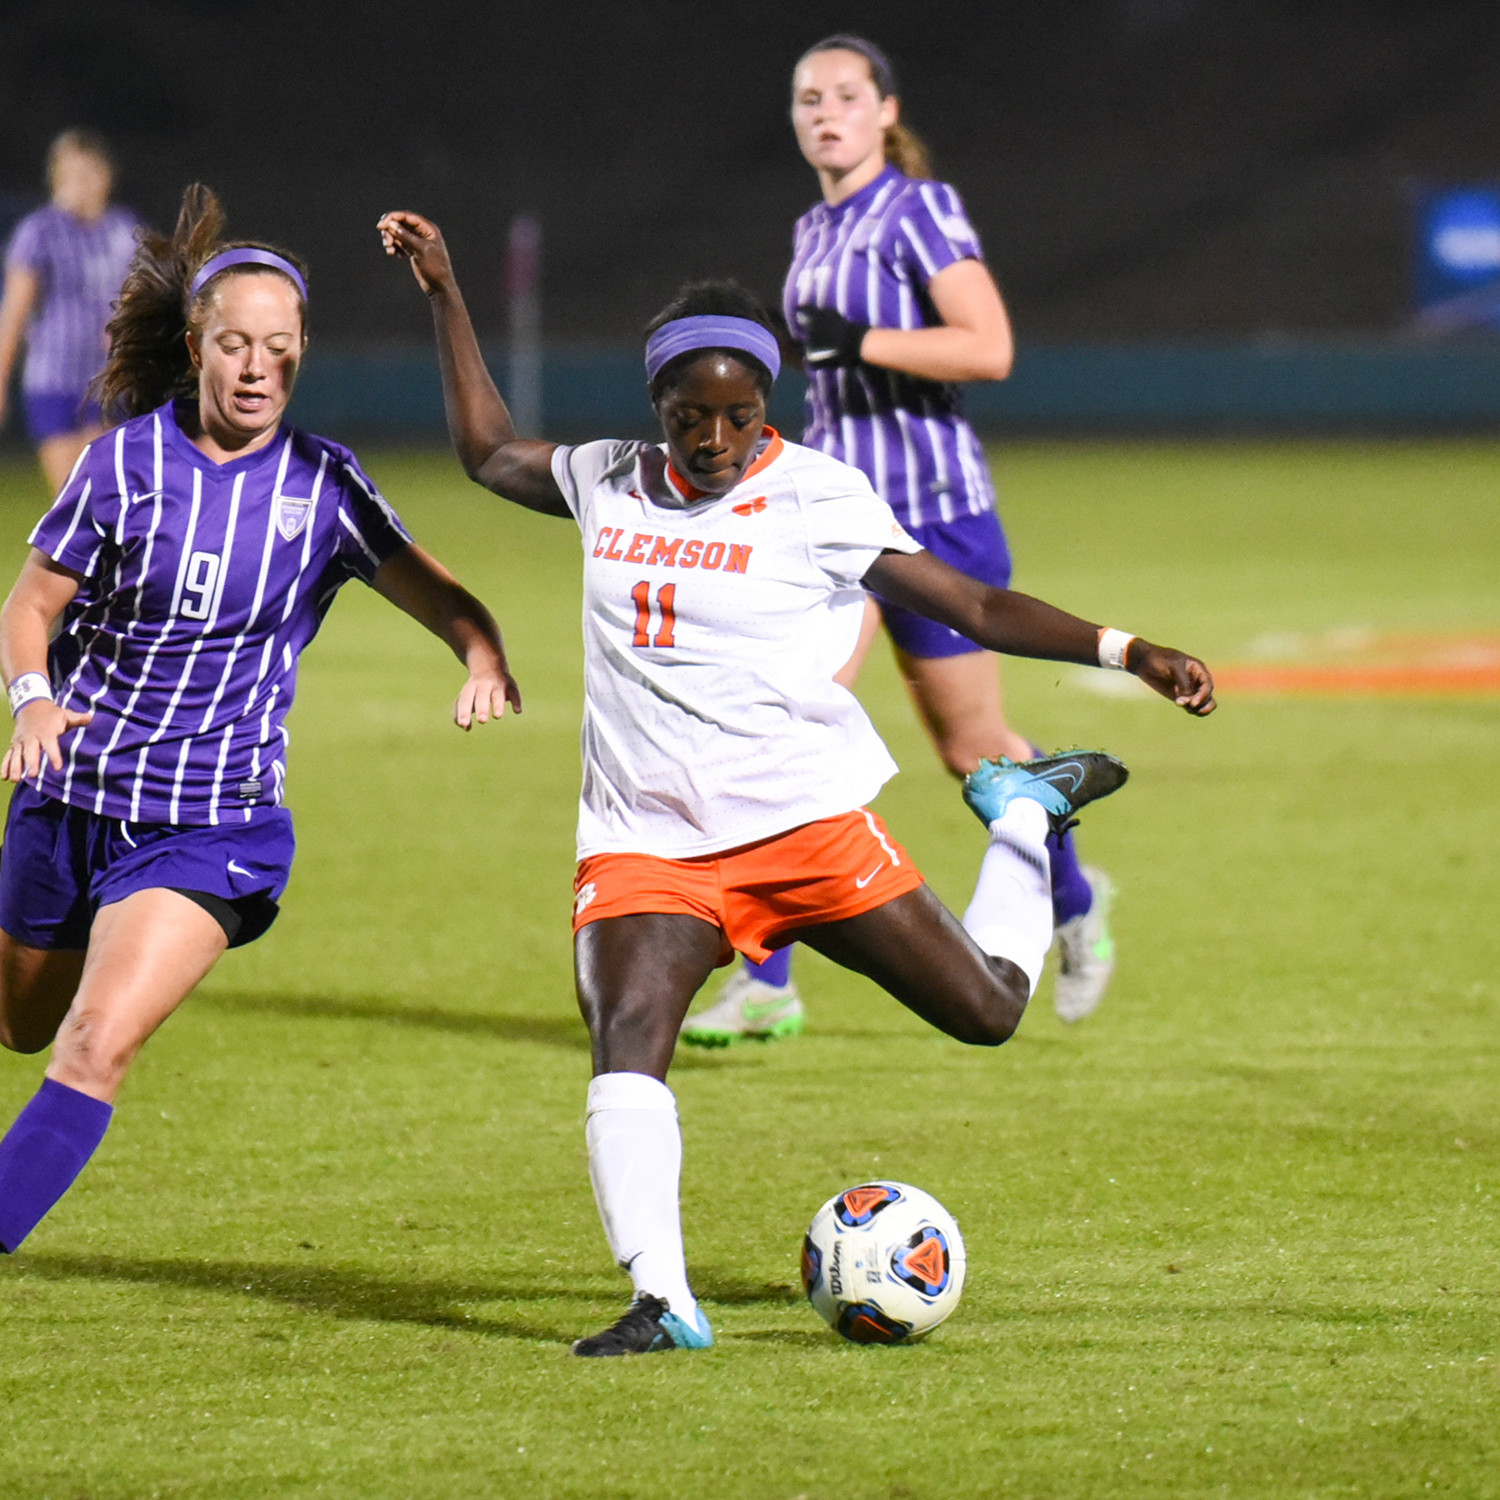 Tigers Host Furman in Spring Match Thursday